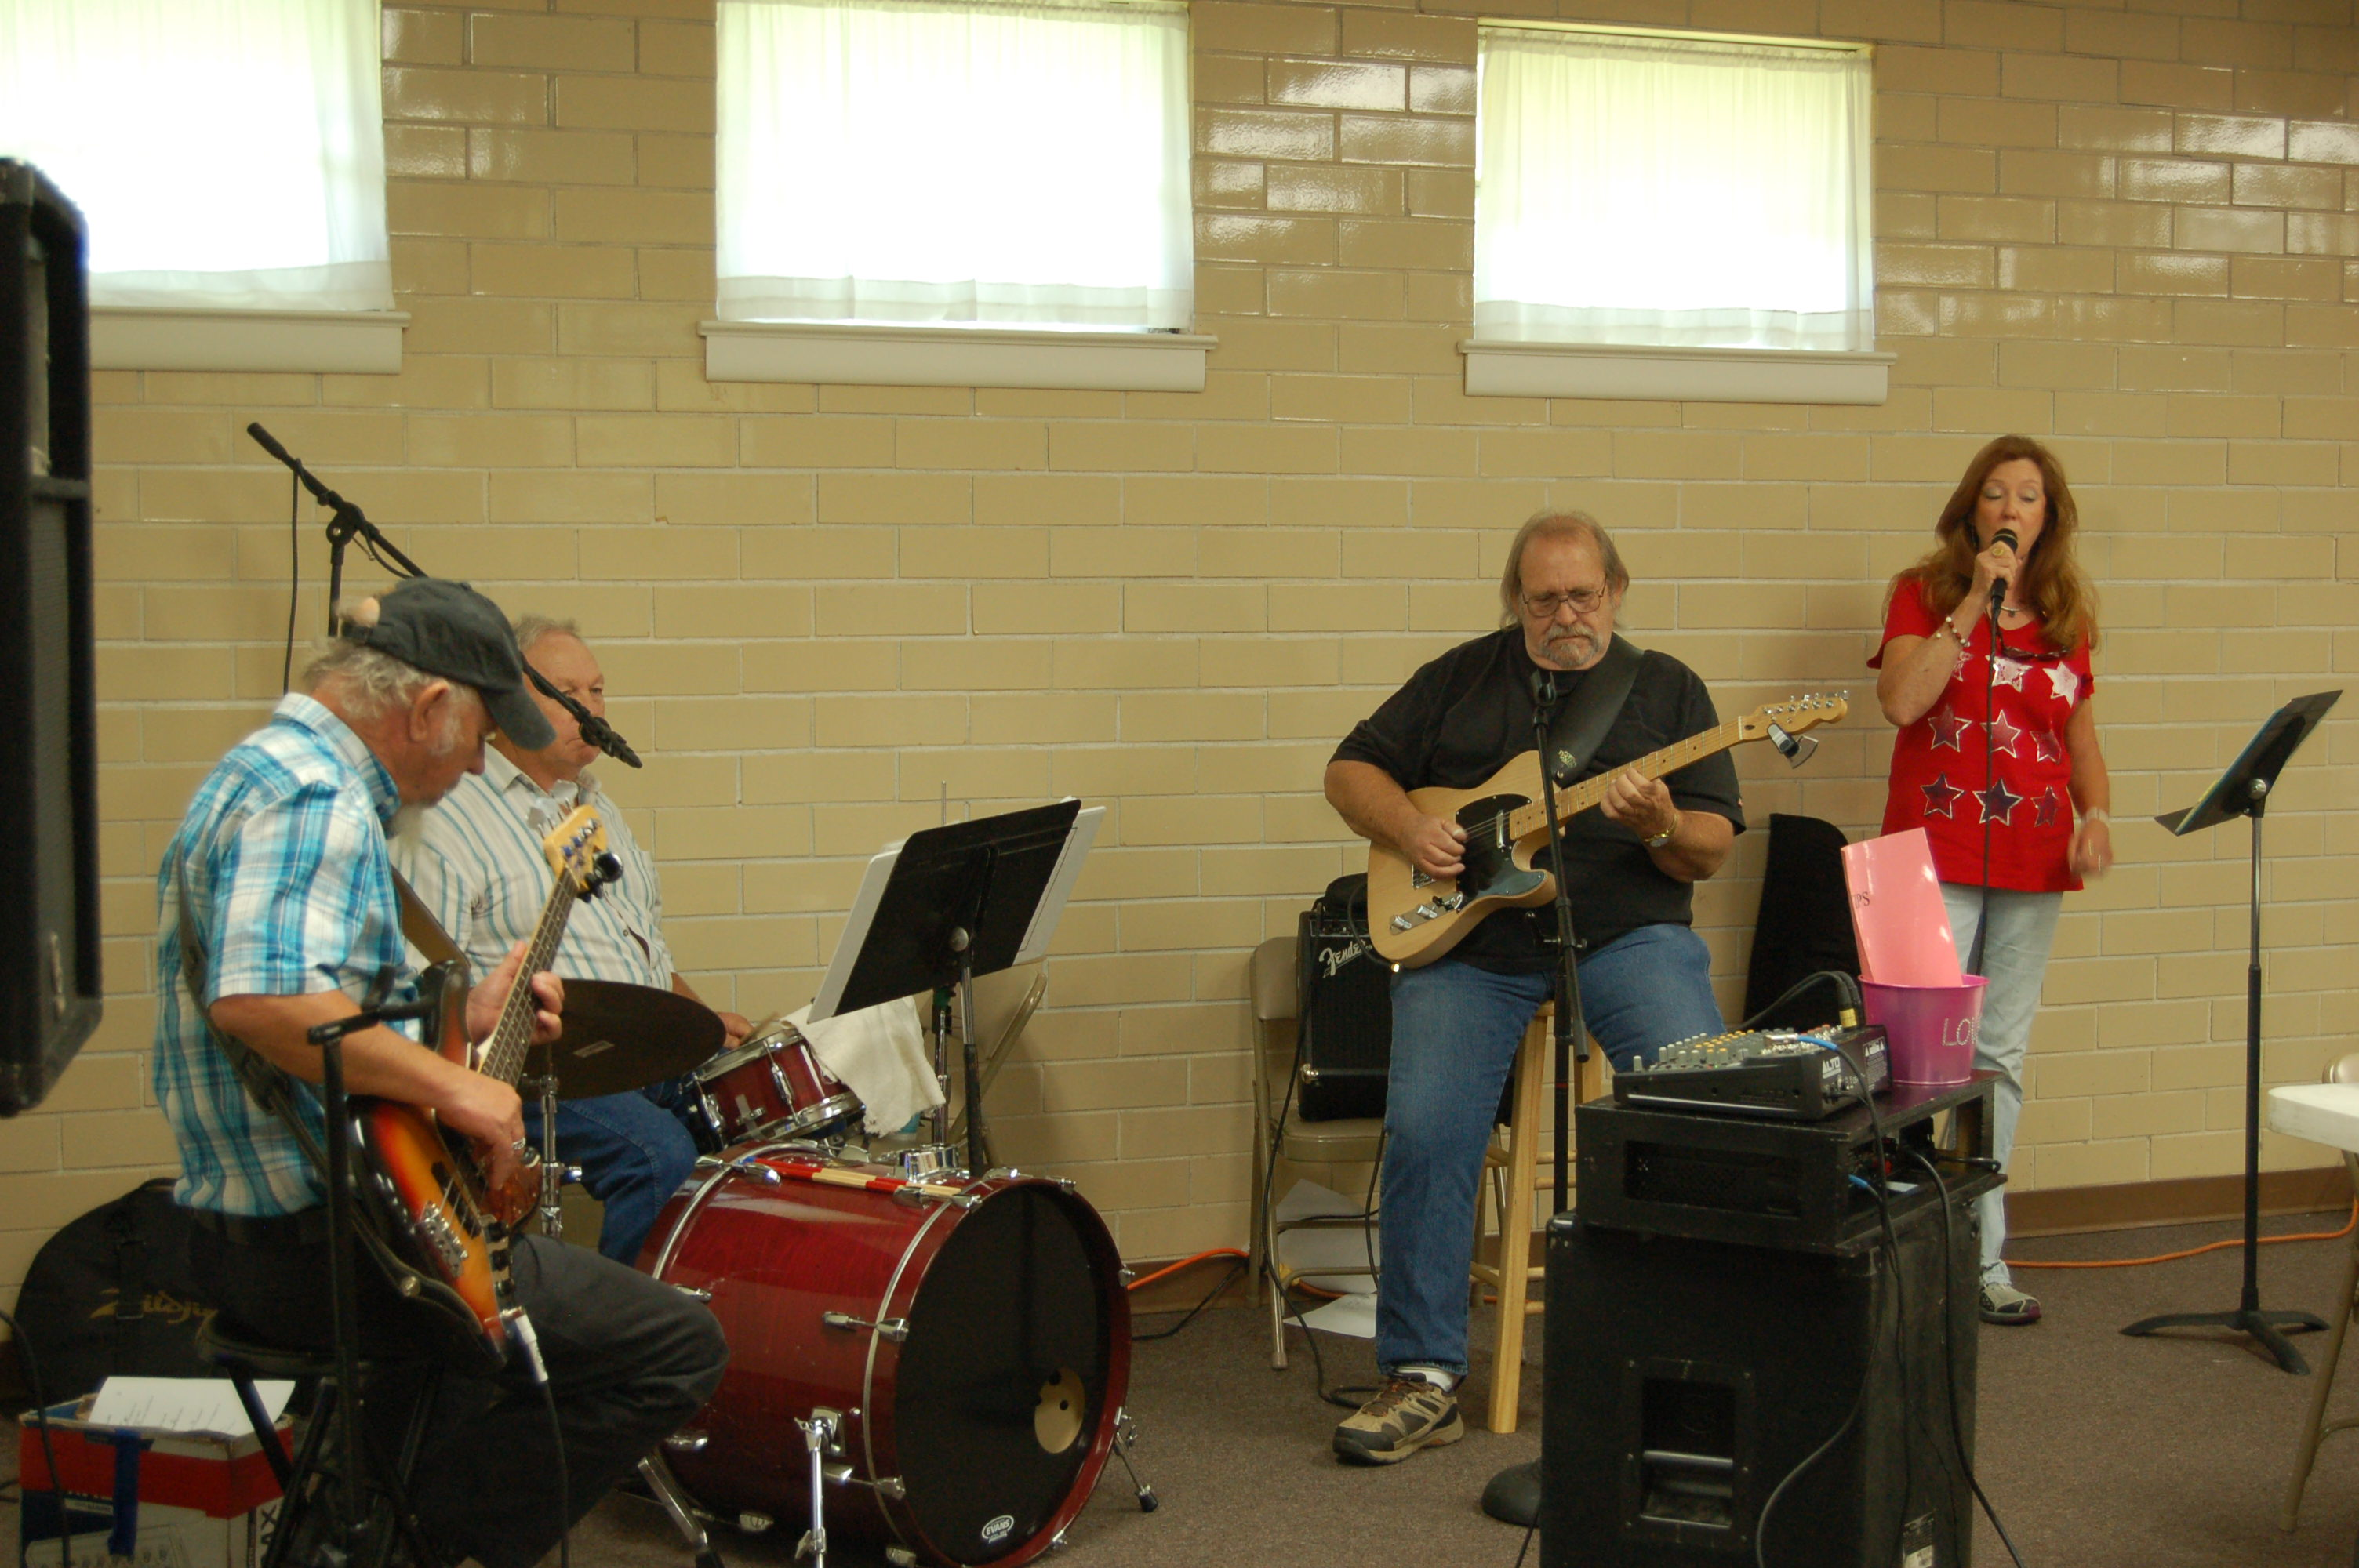 Pinson Community Center's Senior Day Out draws senior country music lovers